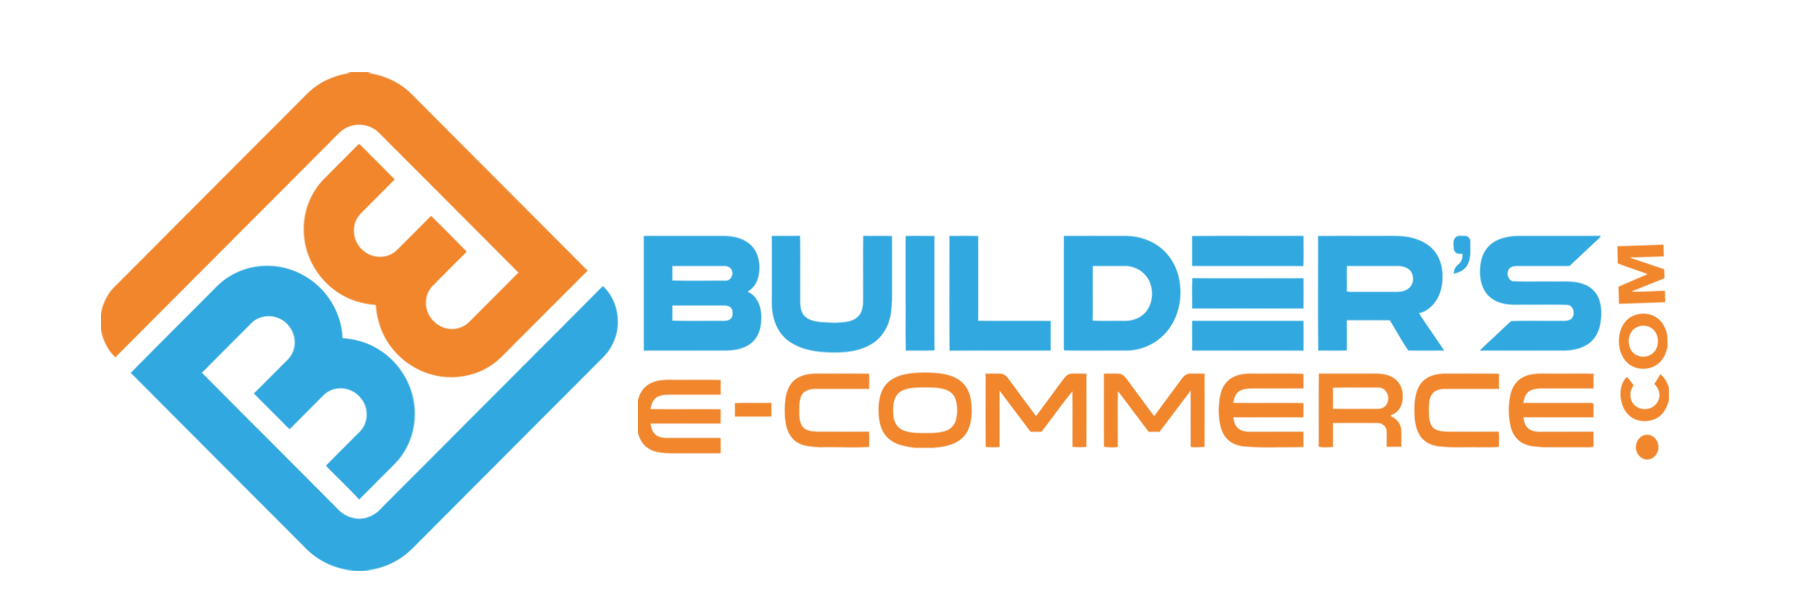 Builder's E-Commerce.com logo